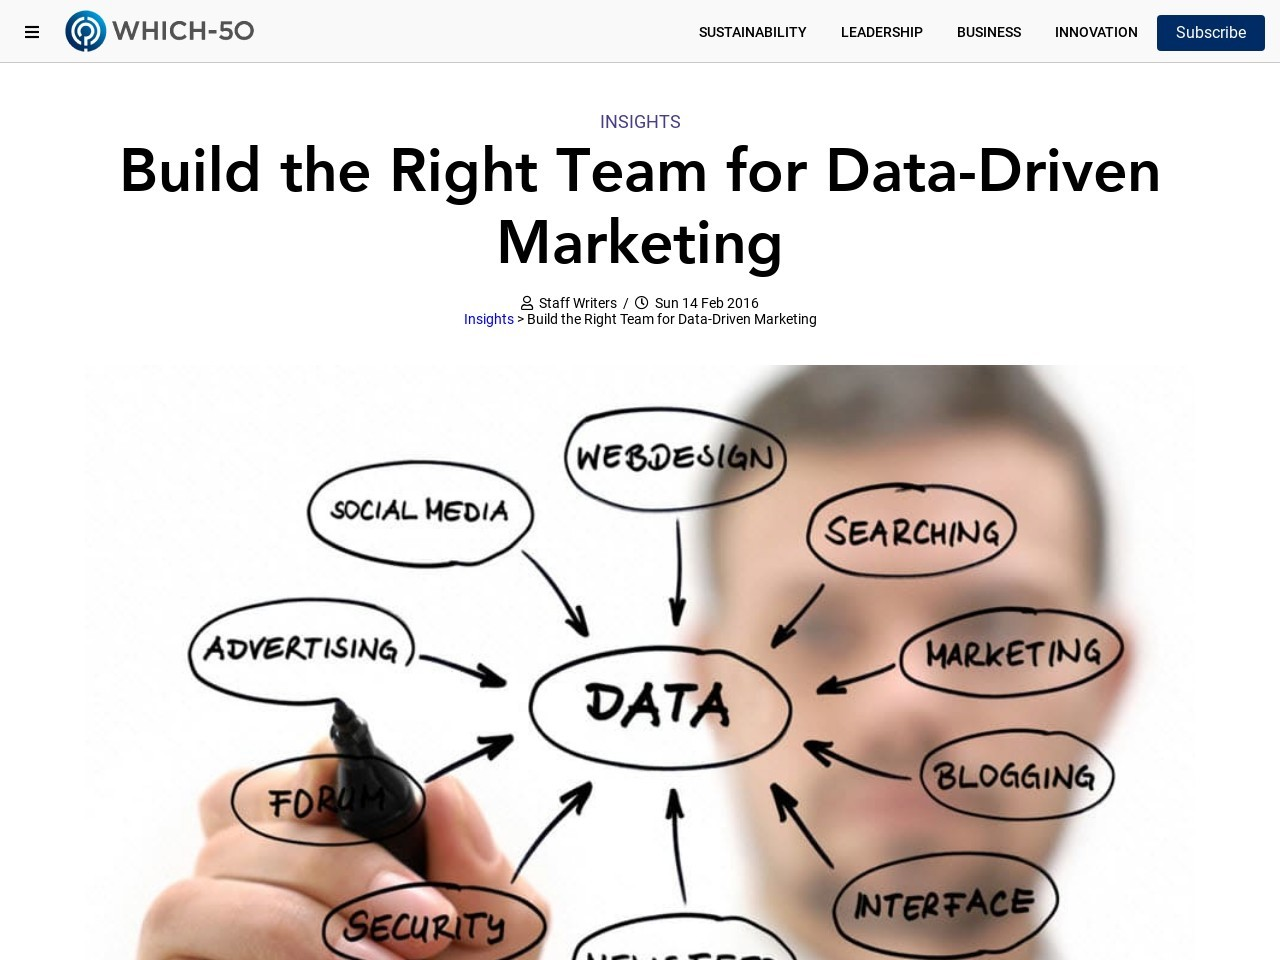 Build the Right Team for Data-Driven Marketing